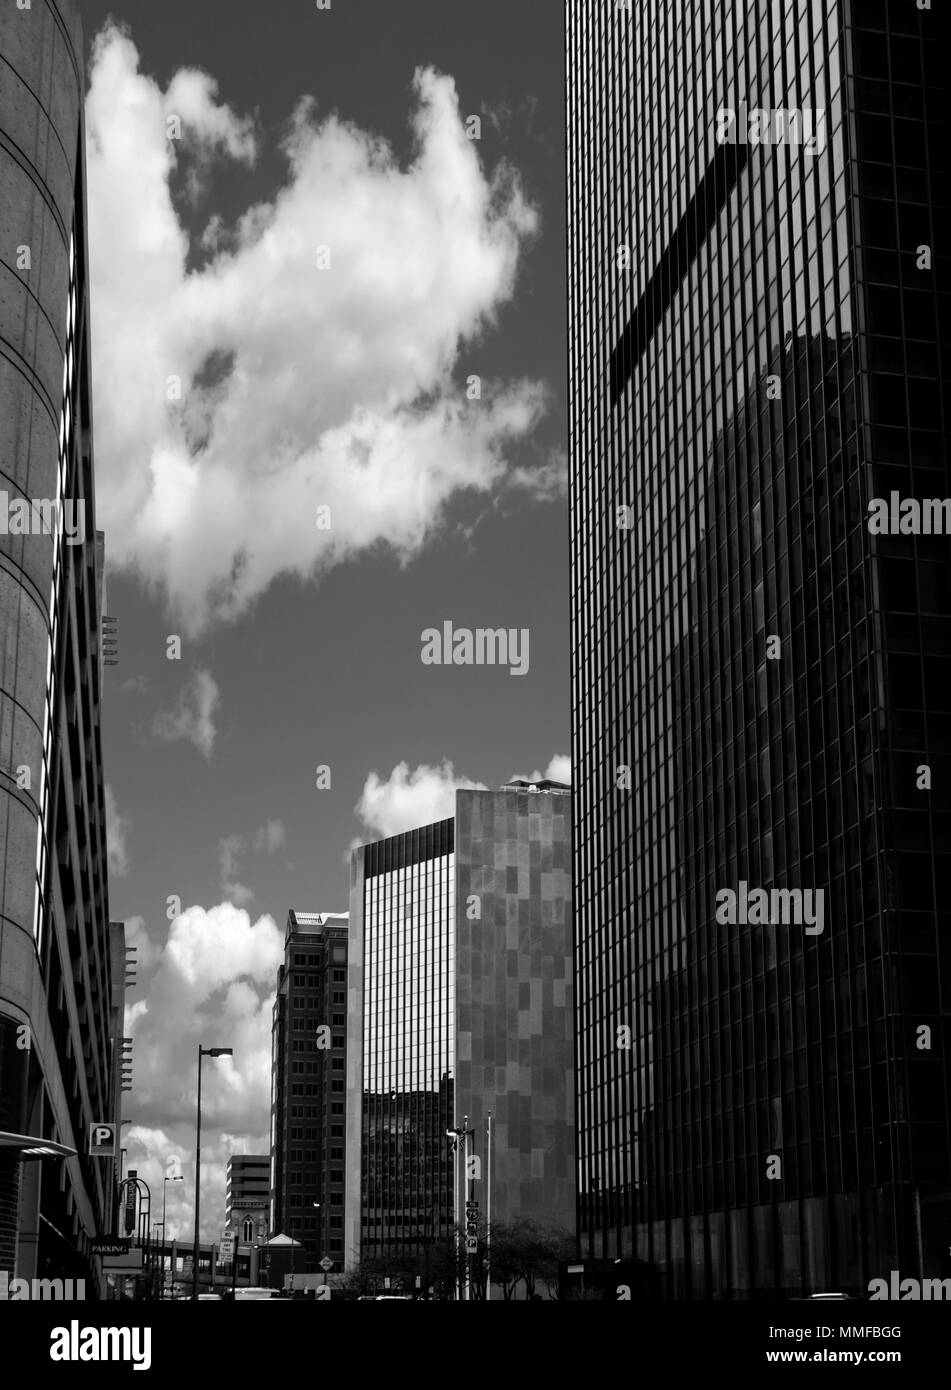 Black and white photo of a typical city street with skyscrapers lining it and cars parked on it. - Stock Image